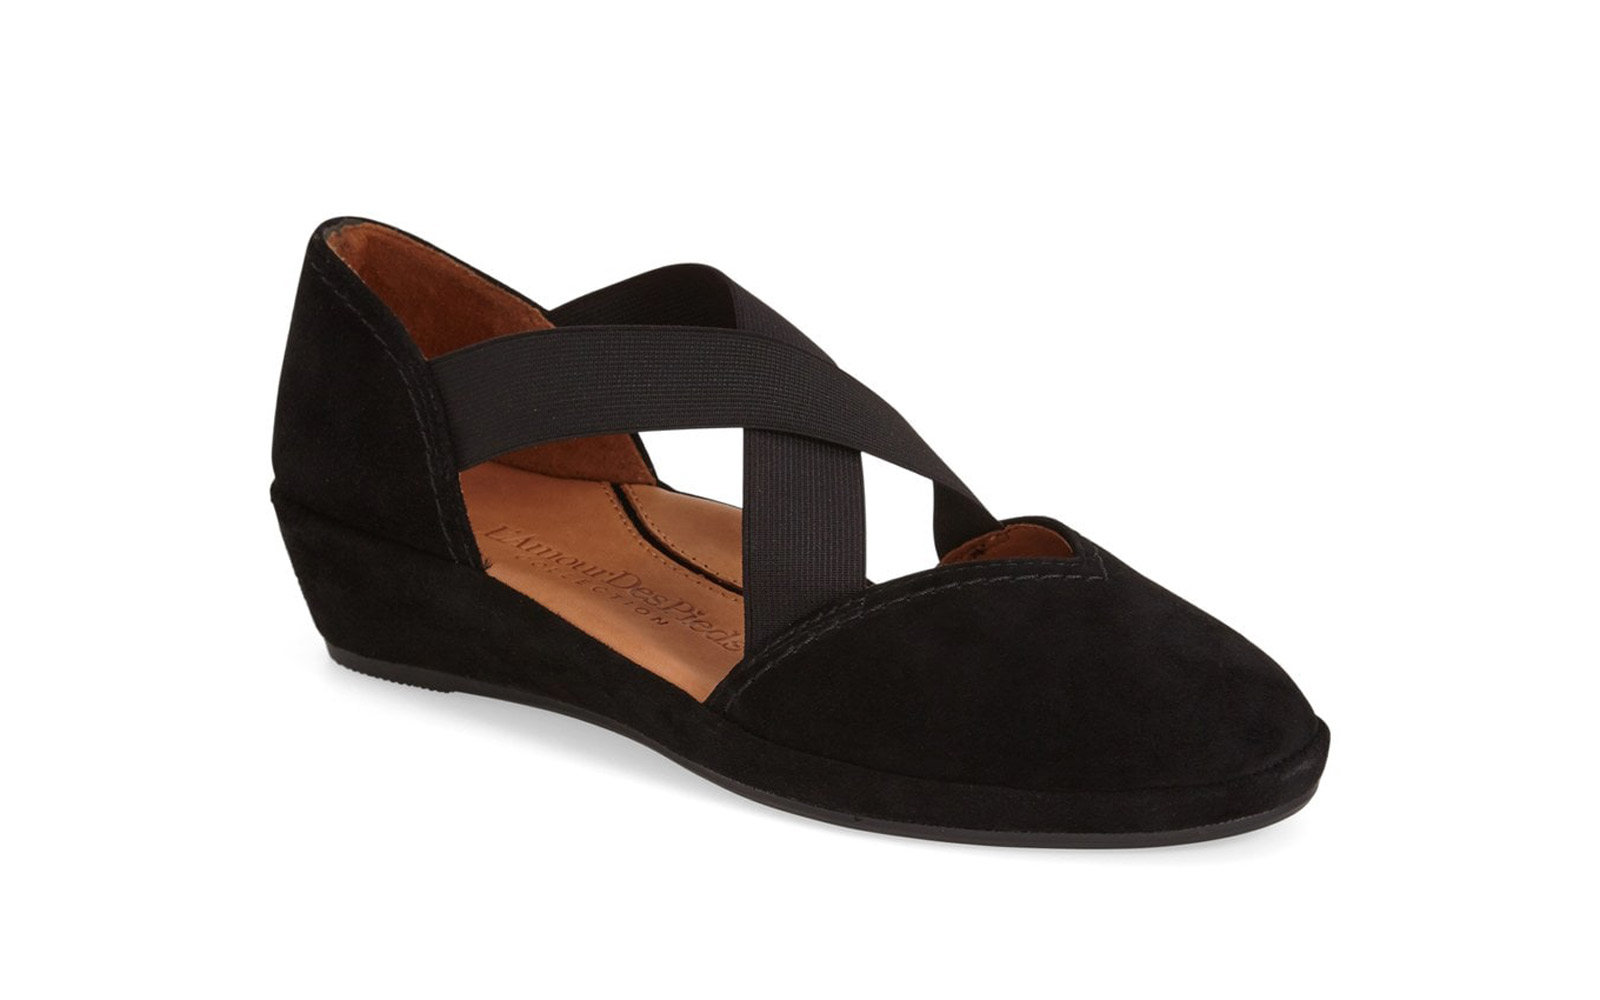 lamour des pieds arch support shoes for women